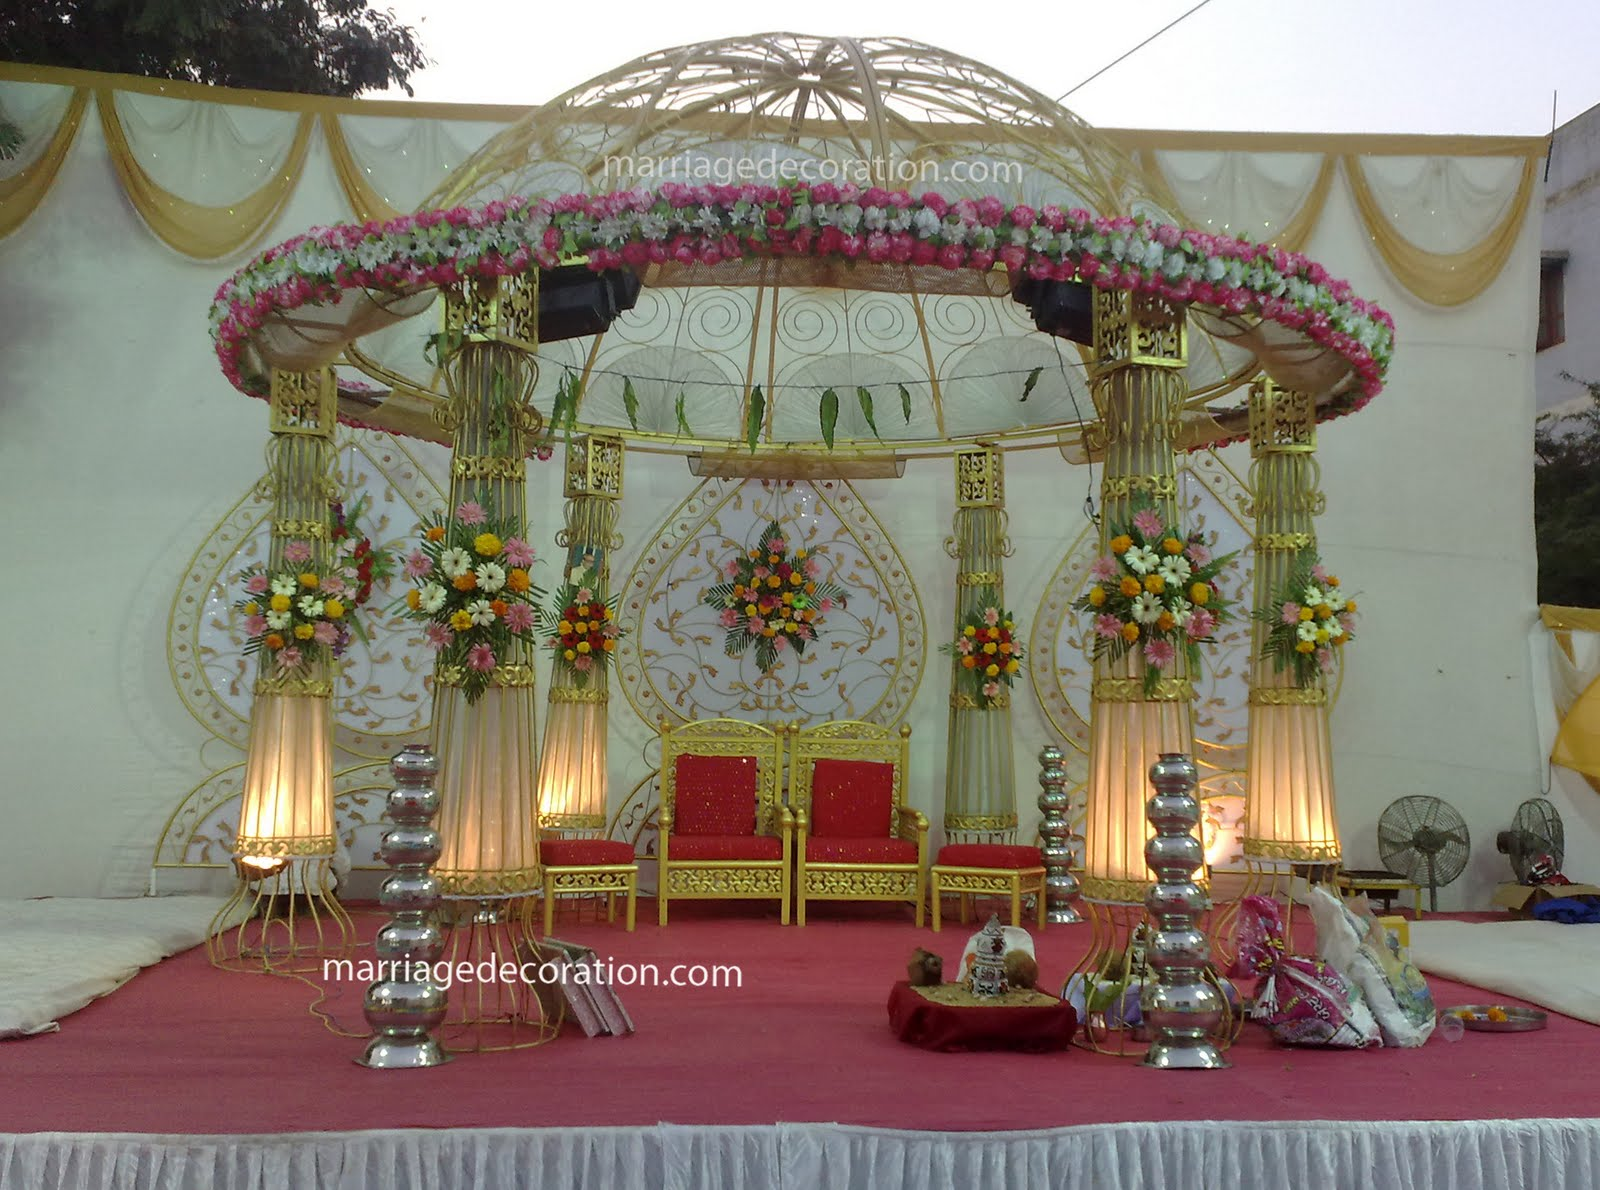 Wedding Reception Decorations Wholesale Wedding Reception Decorations  Wholesale Cenypradufo Image Collections